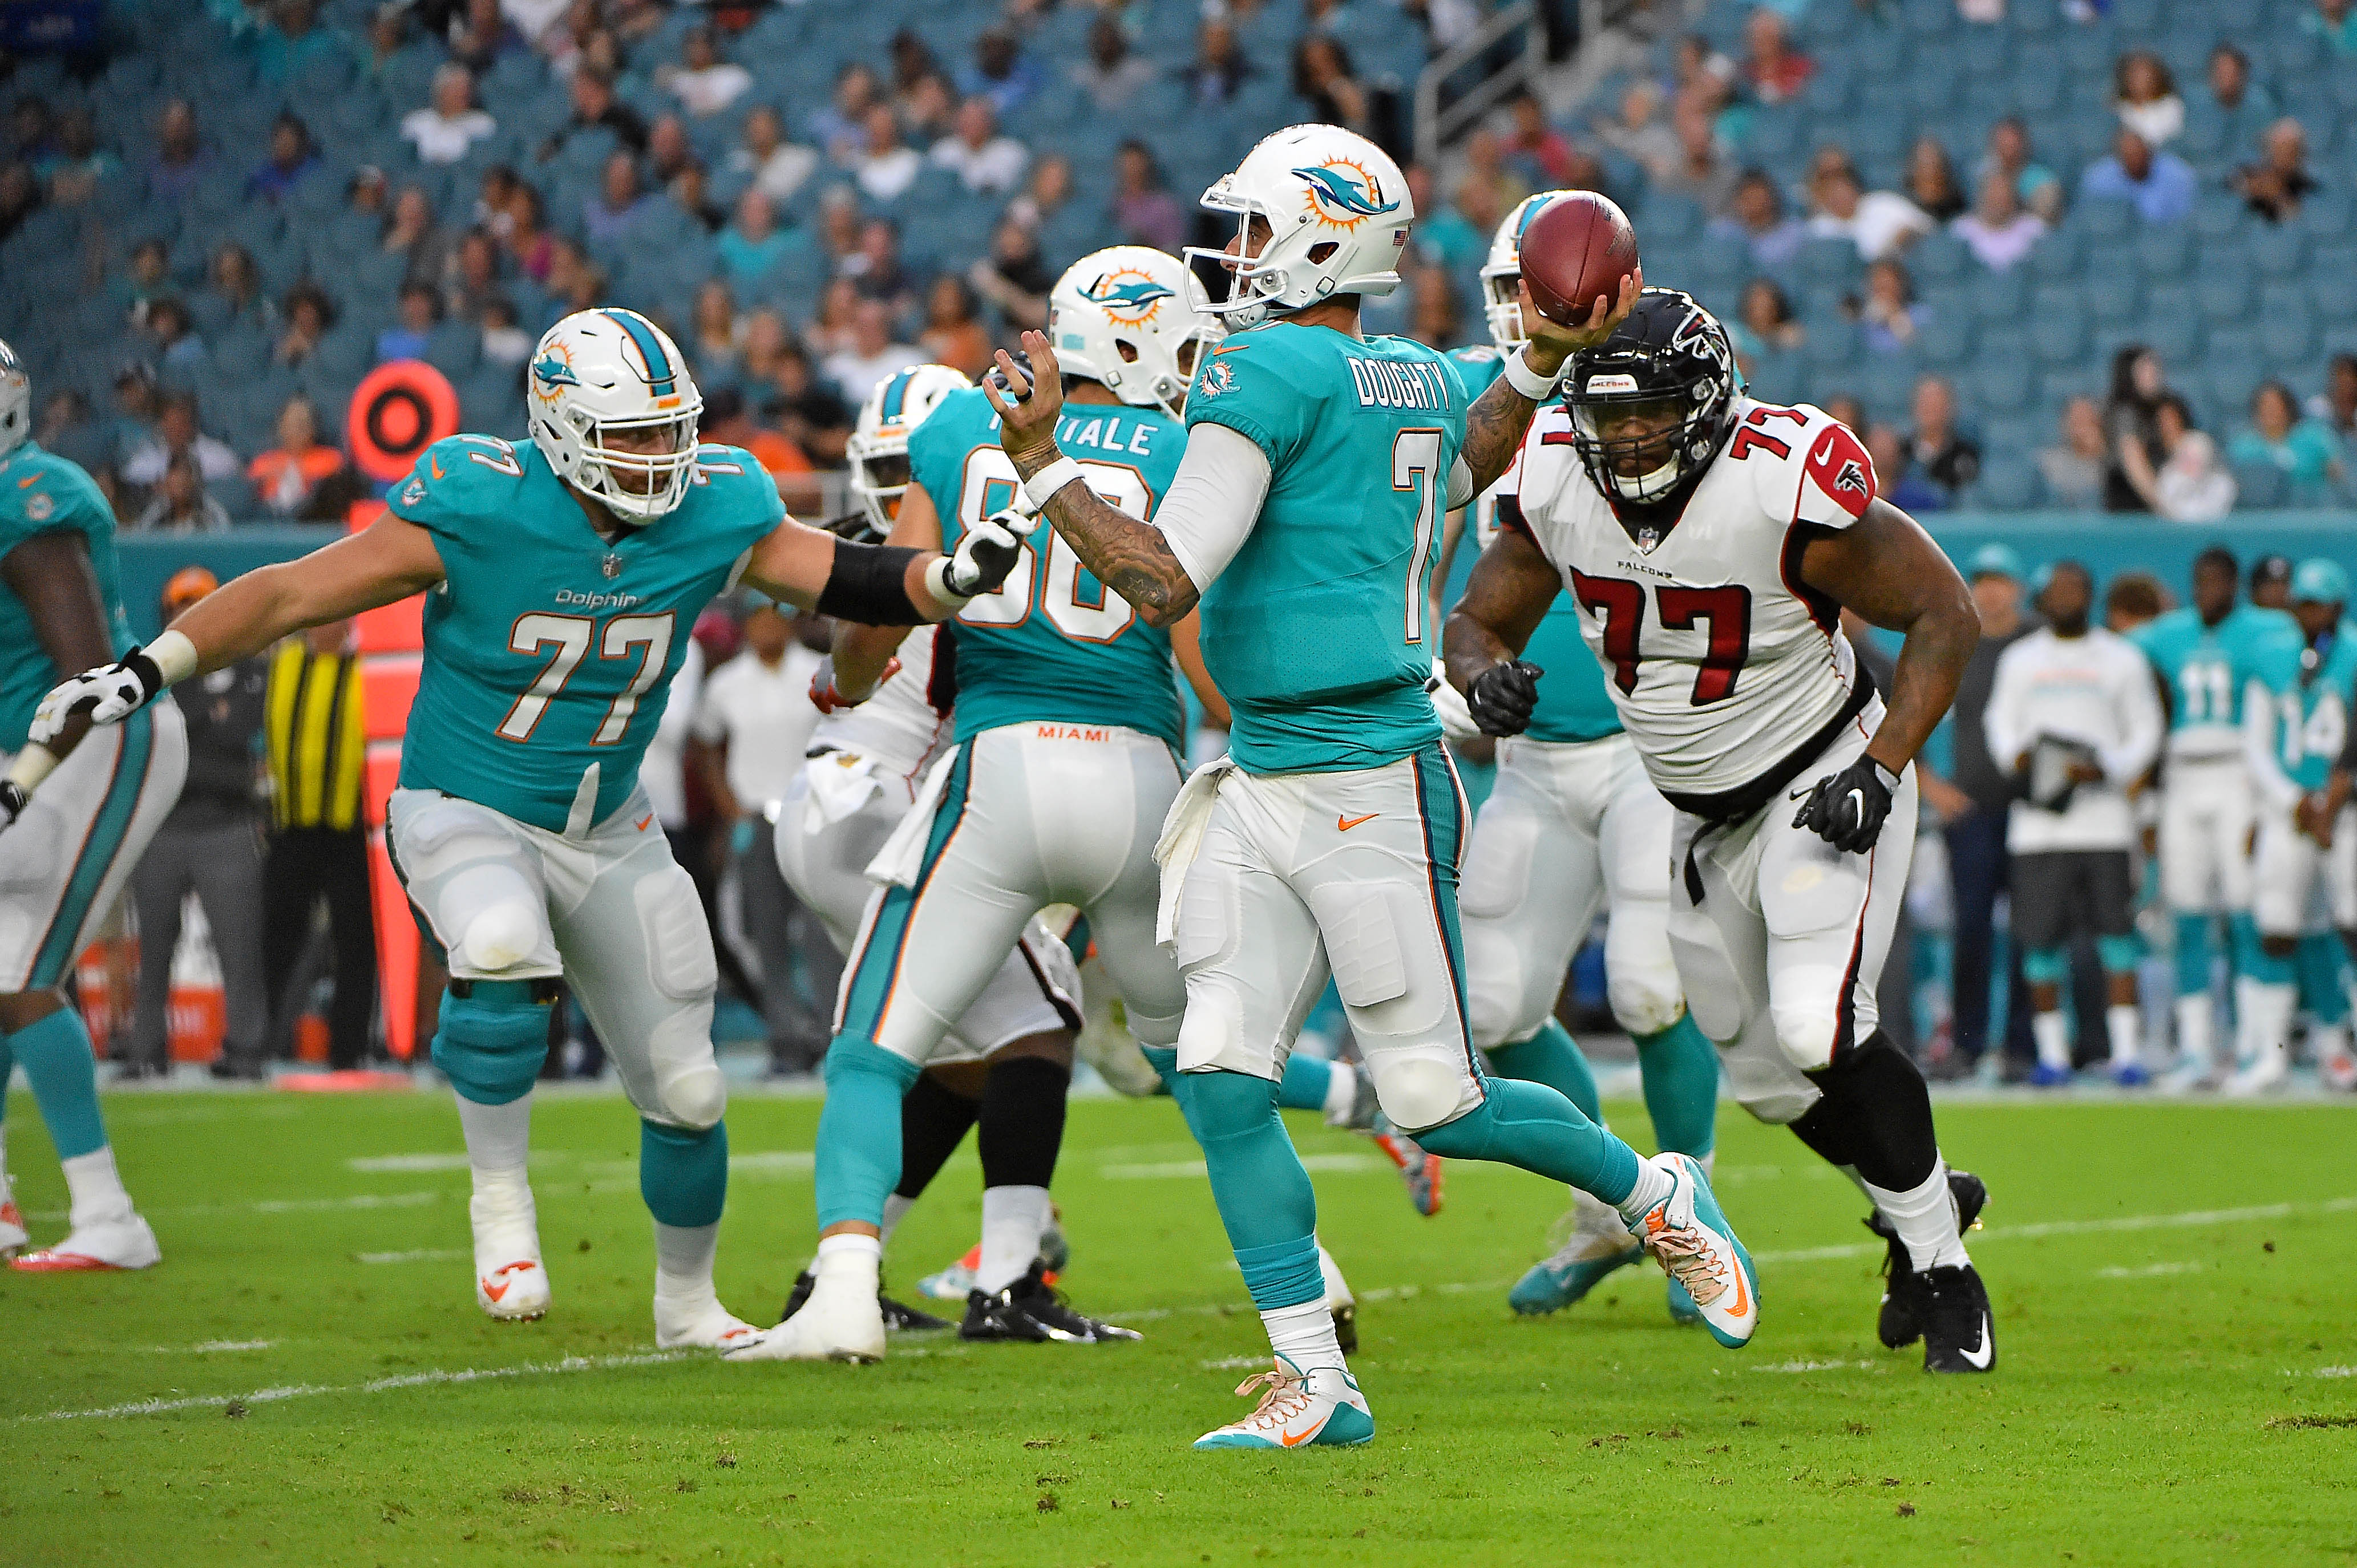 NFL: Atlanta Falcons at Miami Dolphins